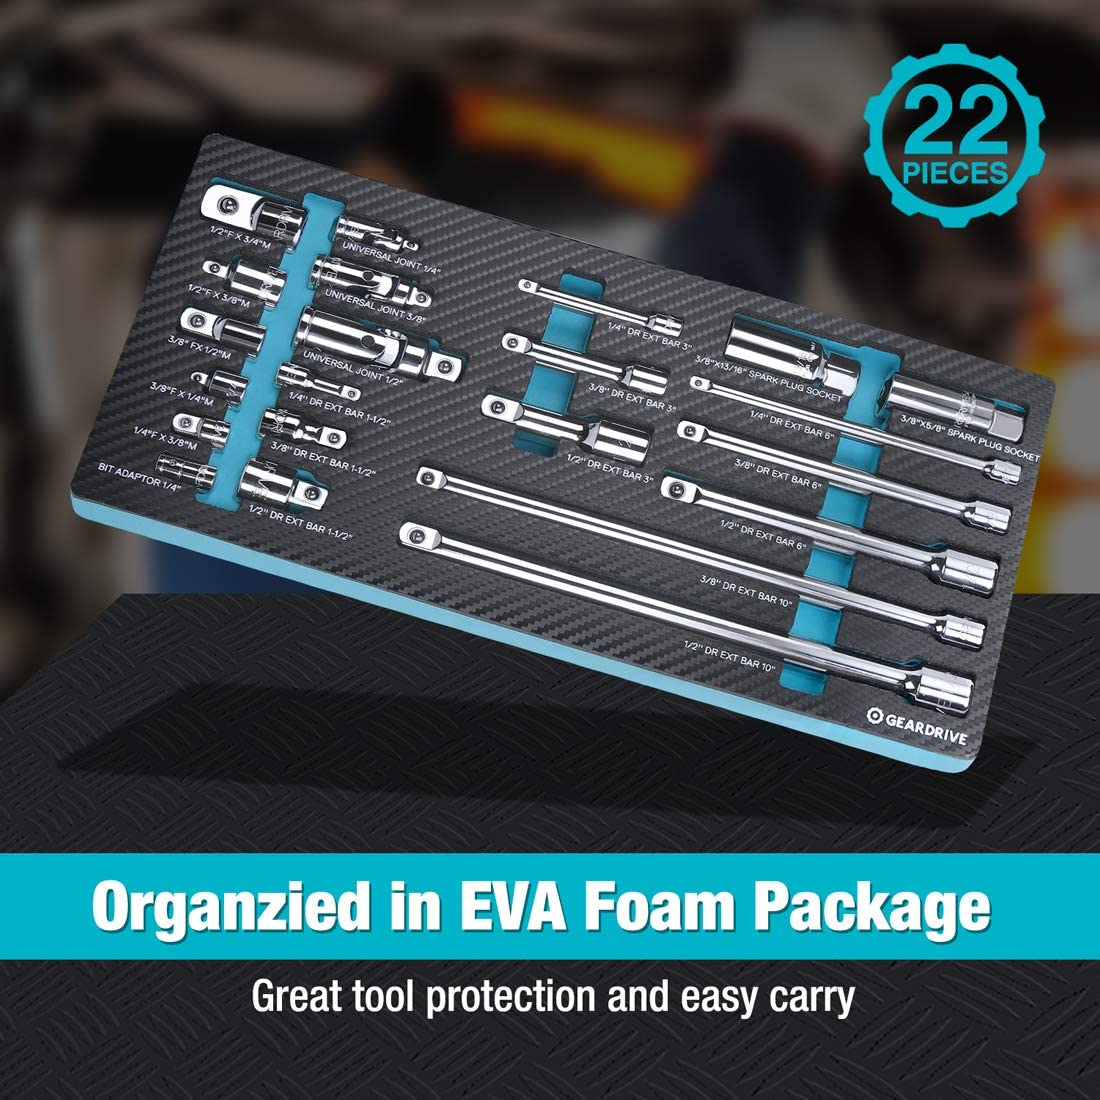 1//2 Drive GEARDRIVE 22-Piece Drive Tool Accessory Set 1//4 Organized in EVA Foam Package Extensions Universal Joints and Impact Coupler 3//8 CR-V Steel with Mirror Finish Includes Adapters